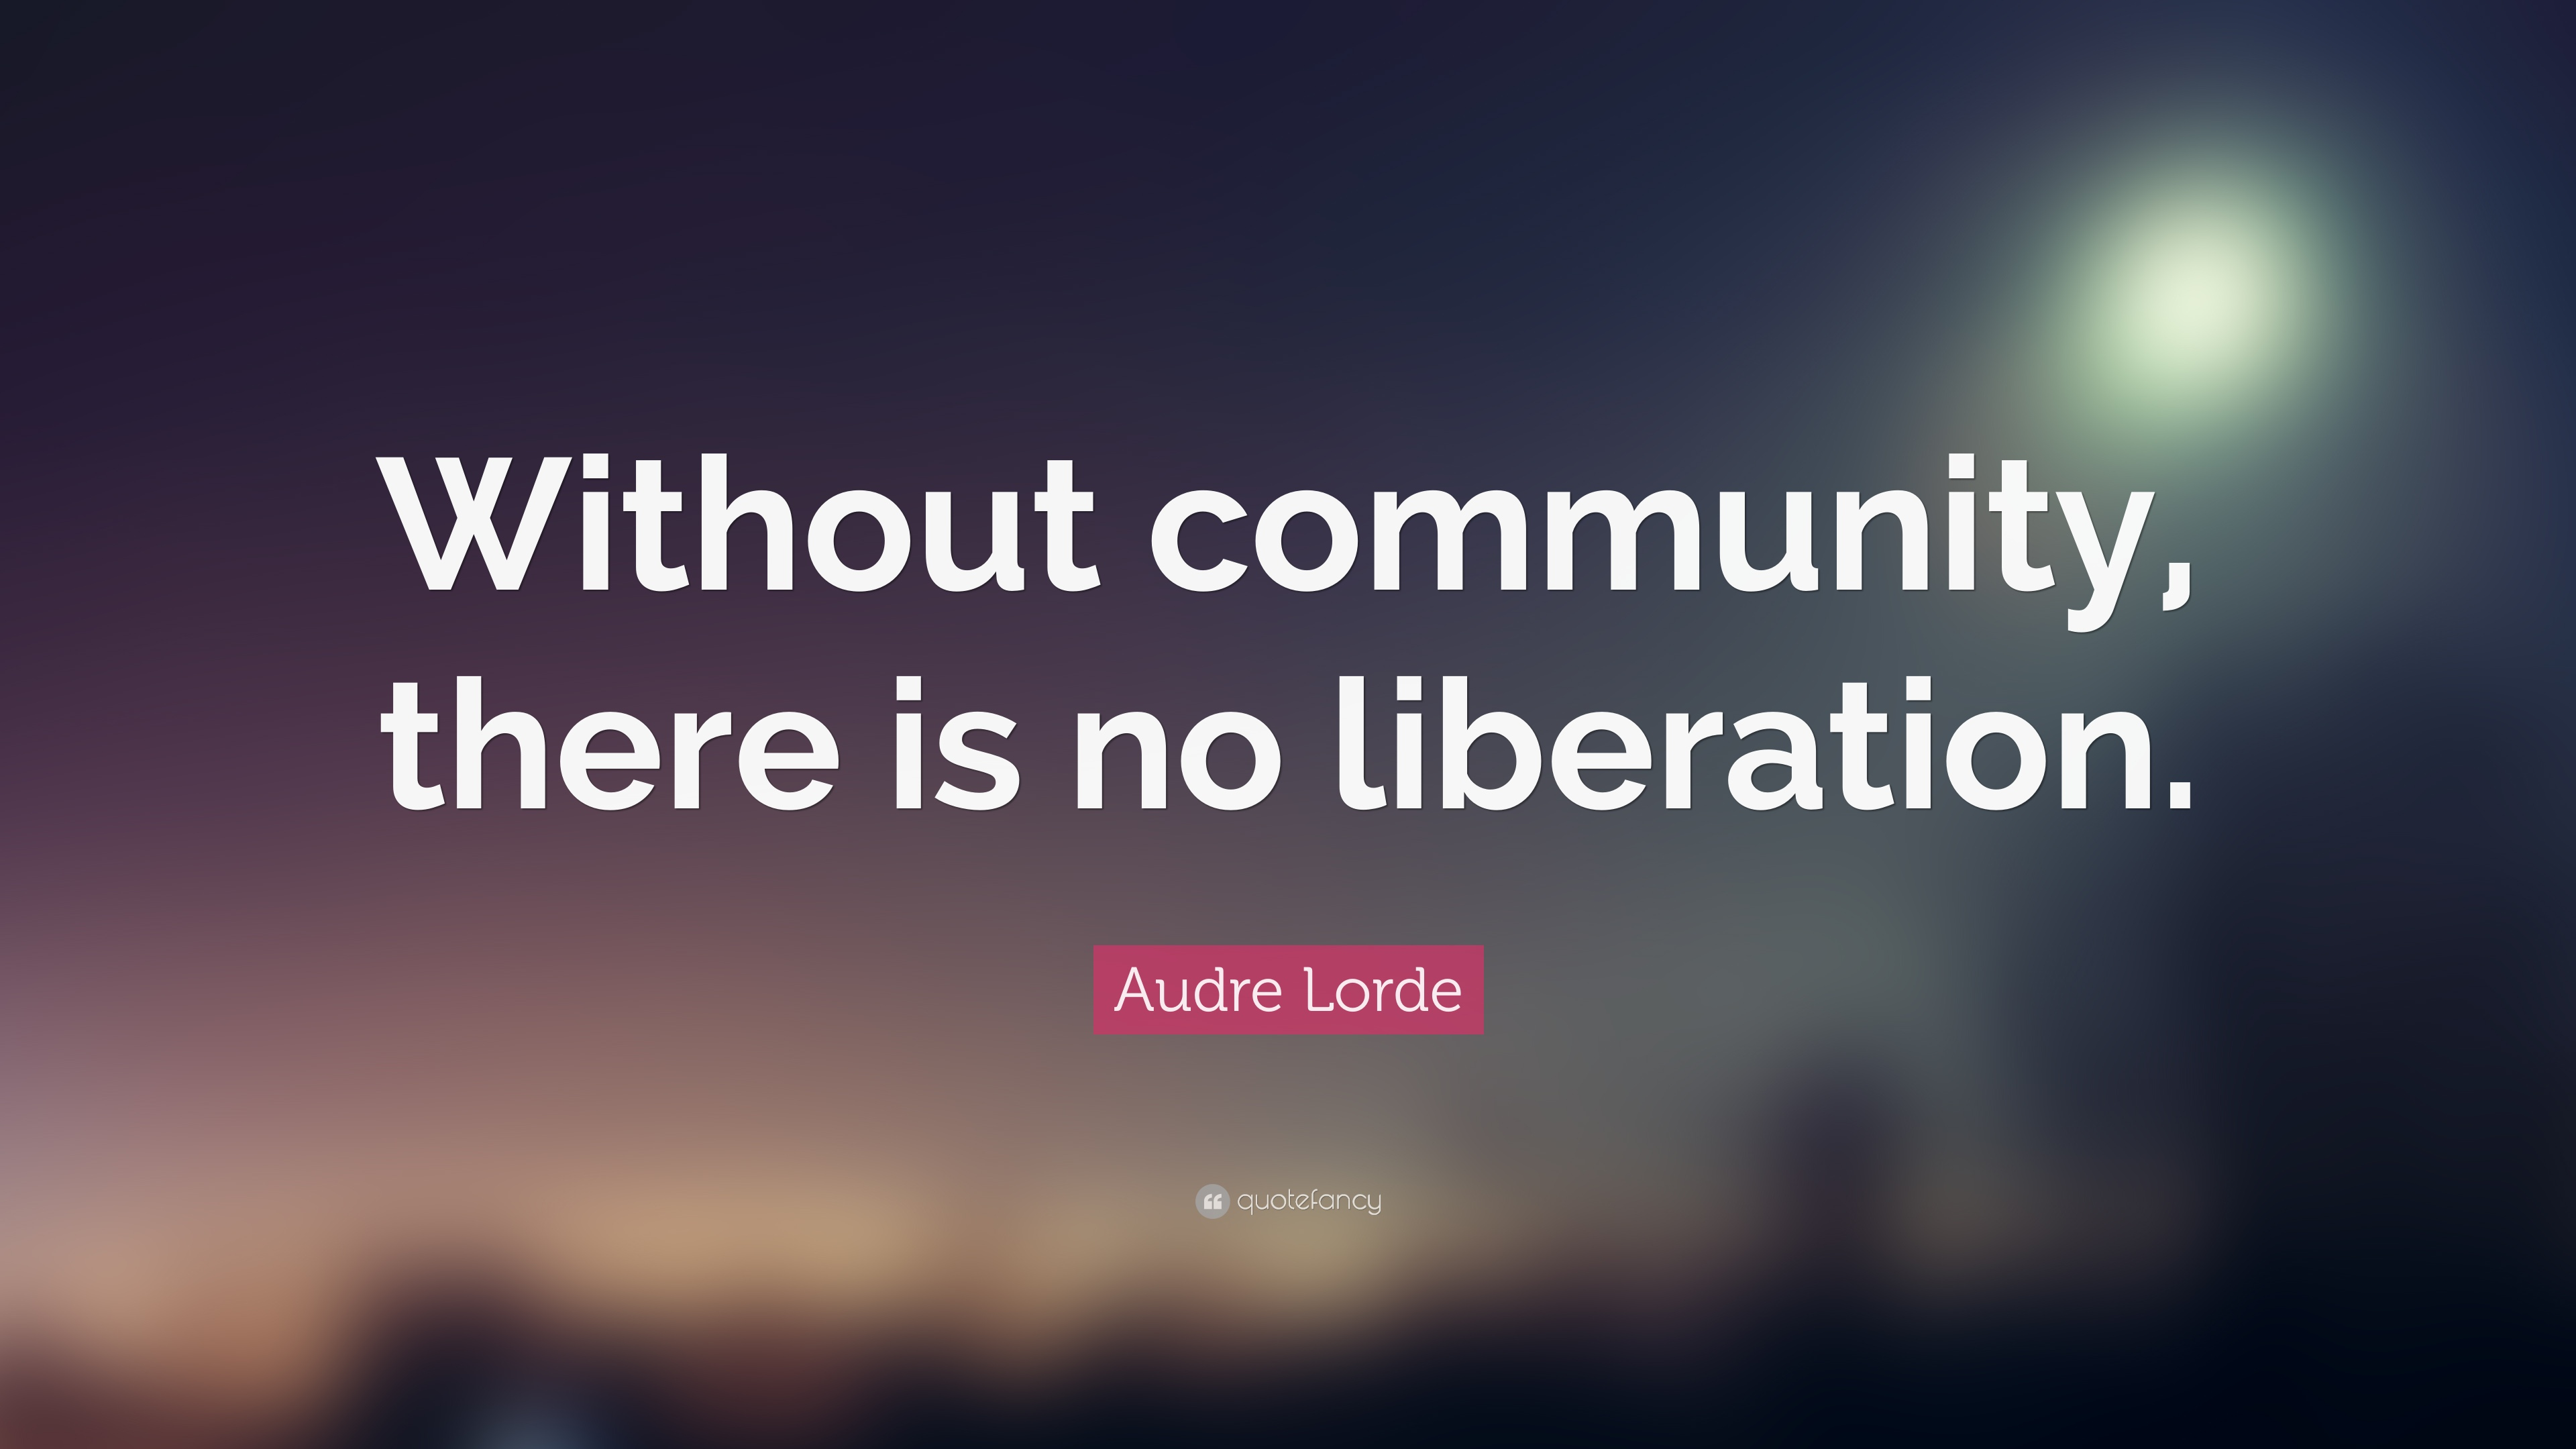 """Quotes About Community Audre Lorde Quote """"Without Community There Is No Liberation"""